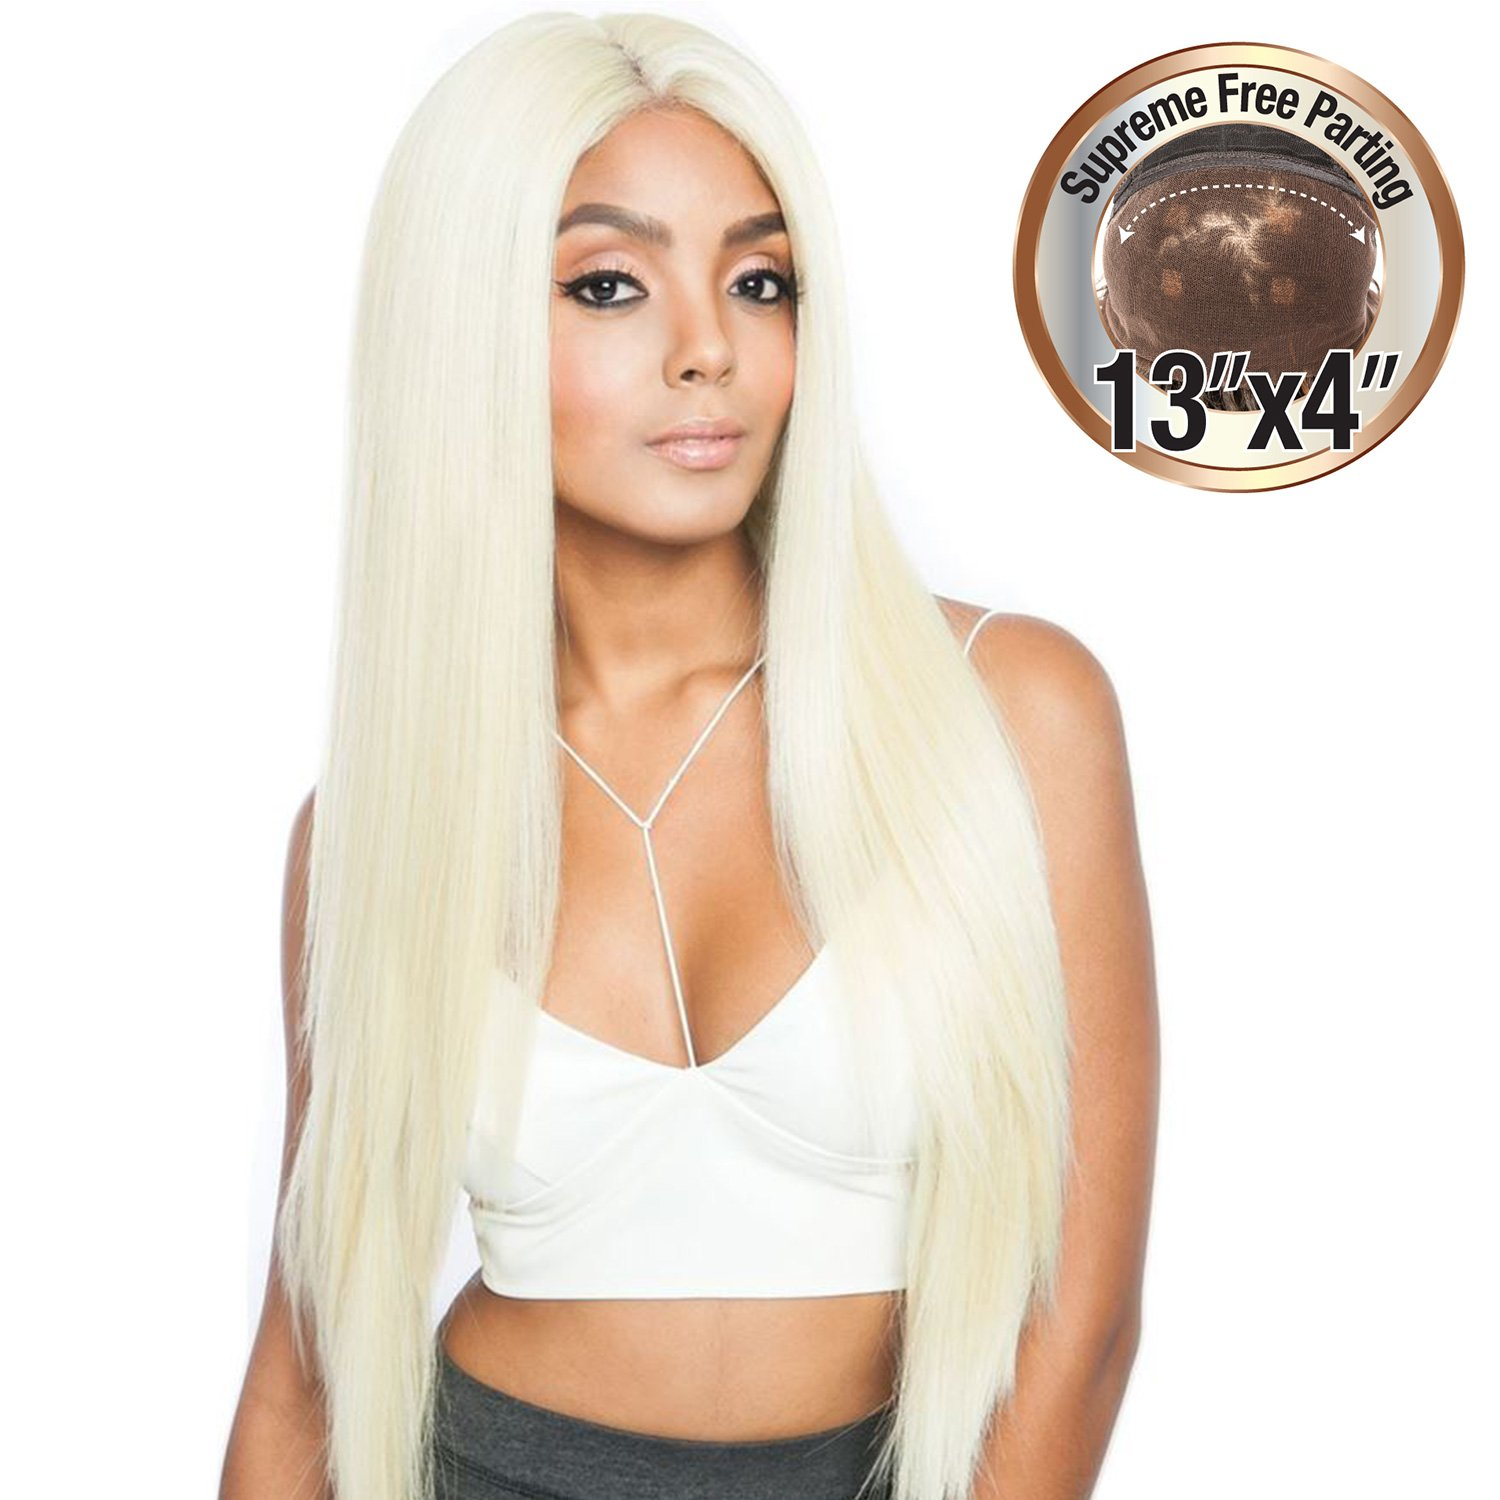 Amazon.com : ISIS Human Hair Blend Lace Front Wig Melanin Queen 13X4 Frontal Lace MLF02 (1) : Beauty